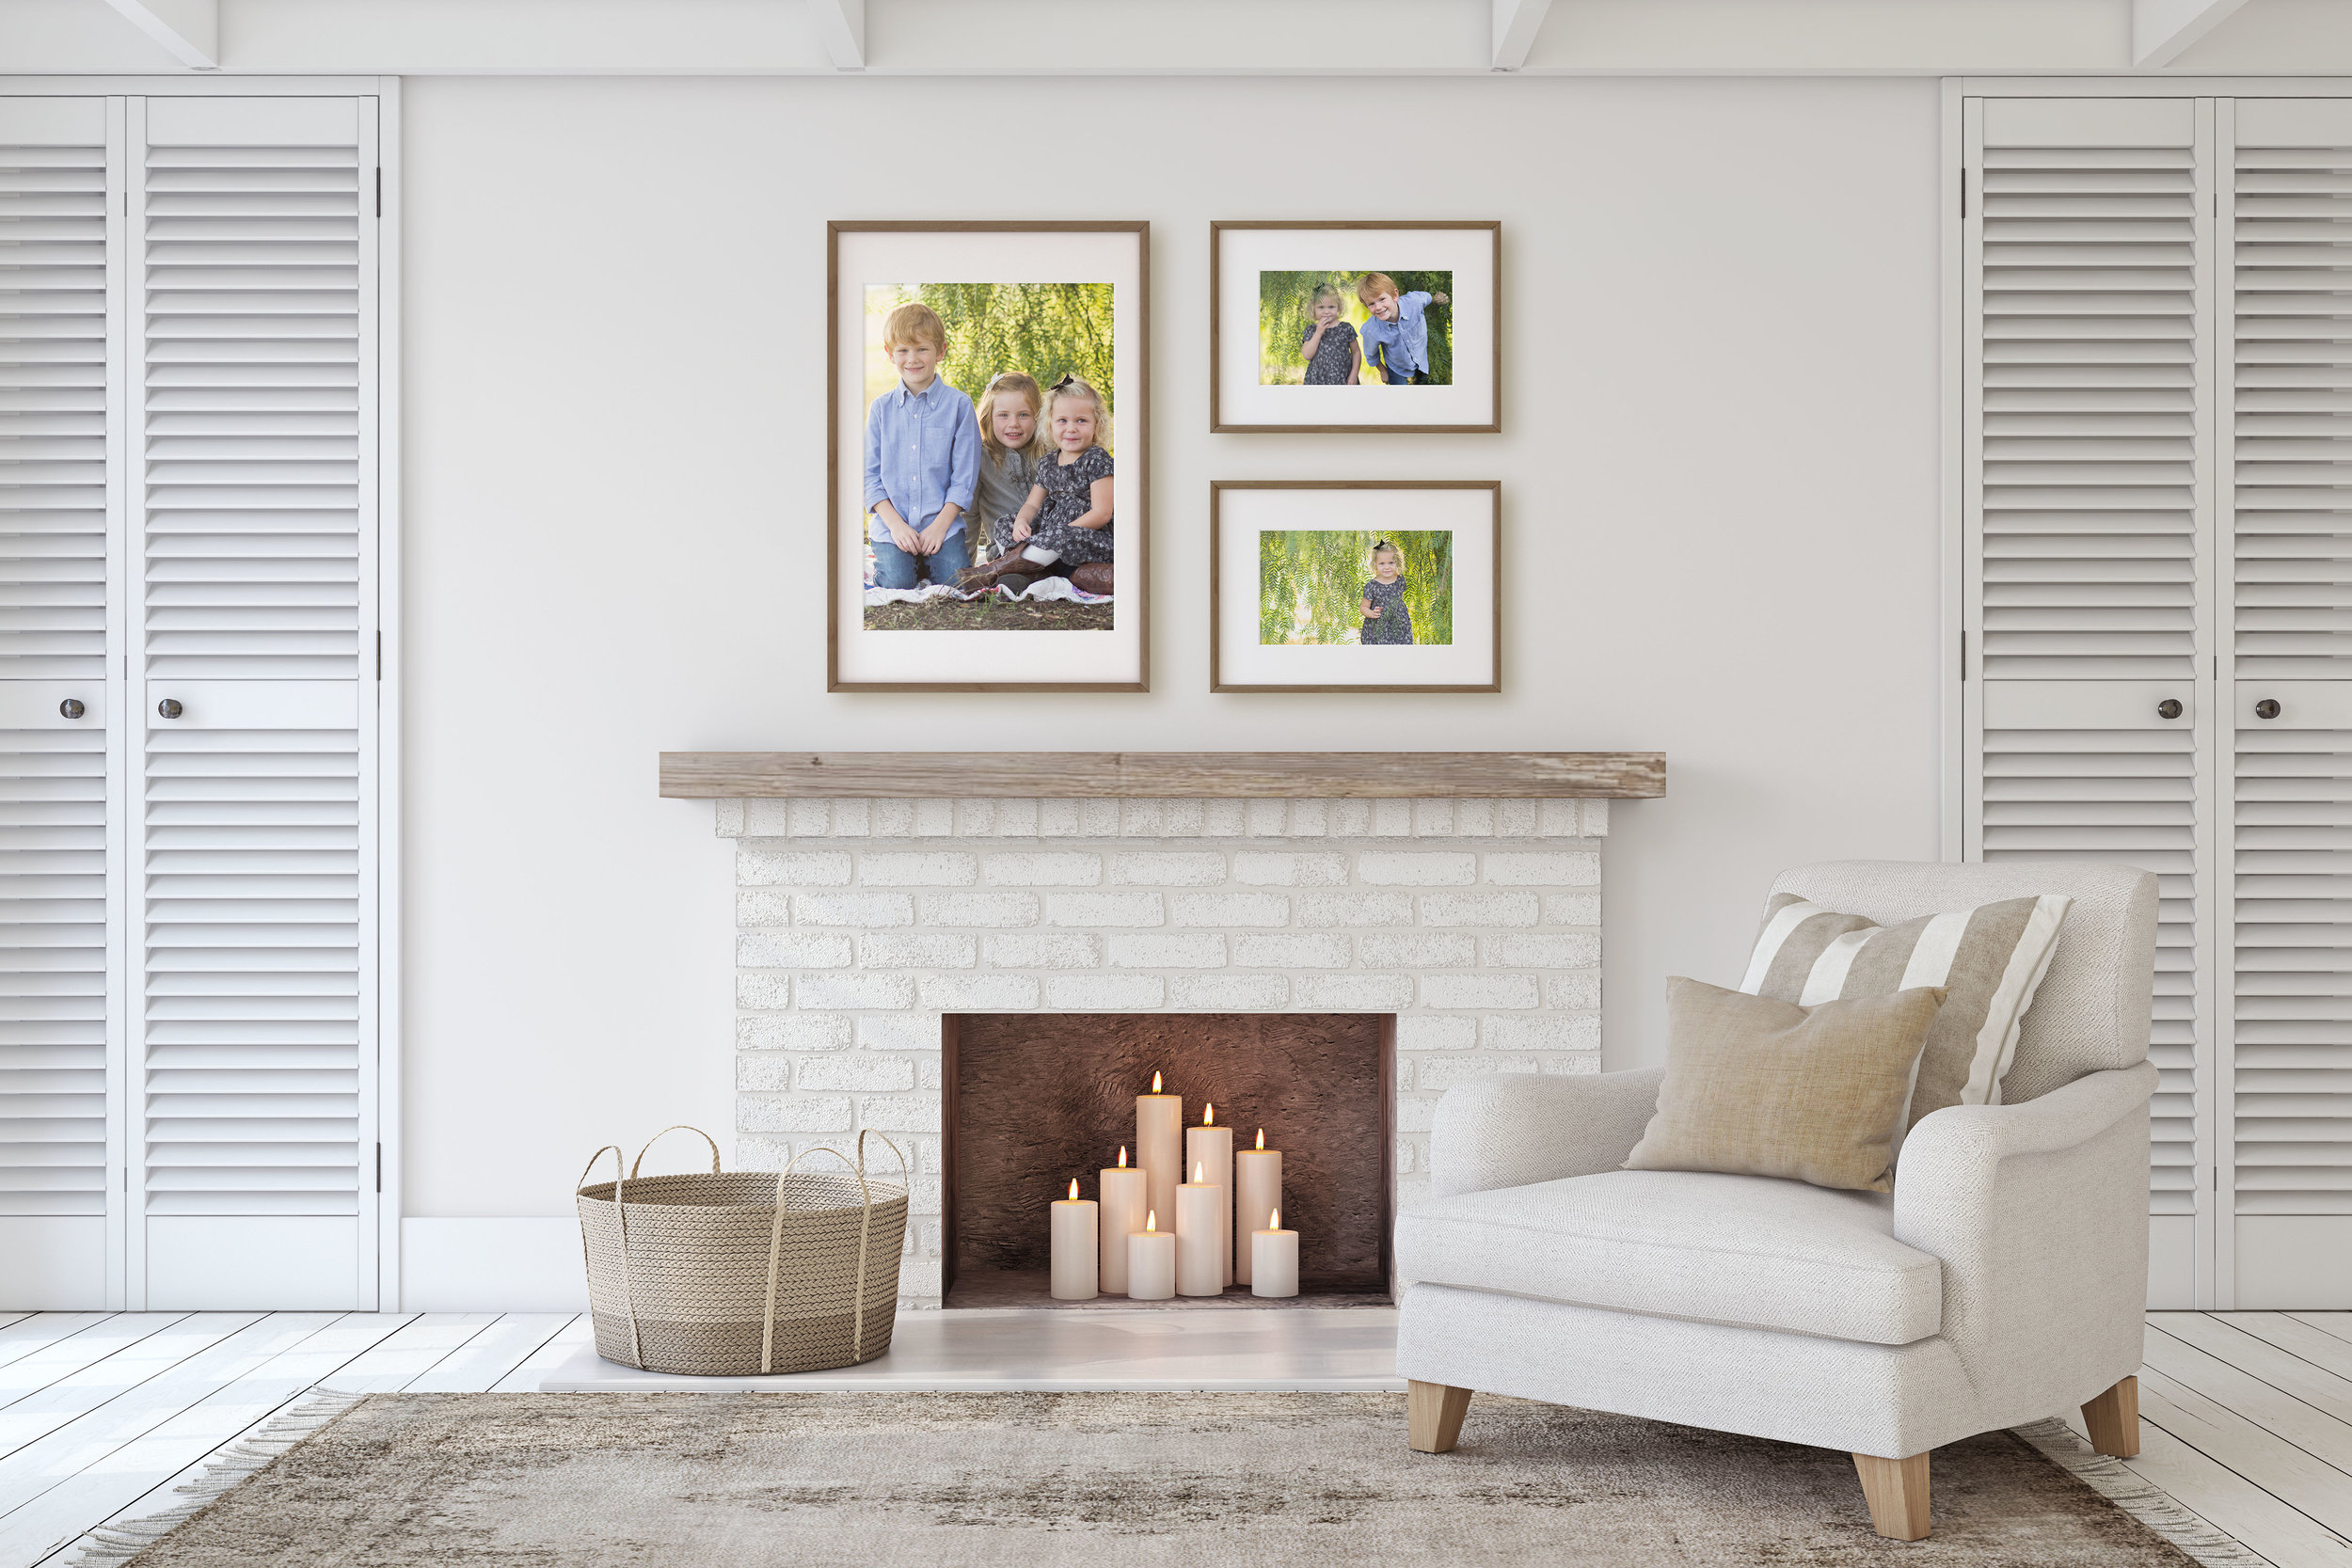 Find the perfect place to display your family's photographs.